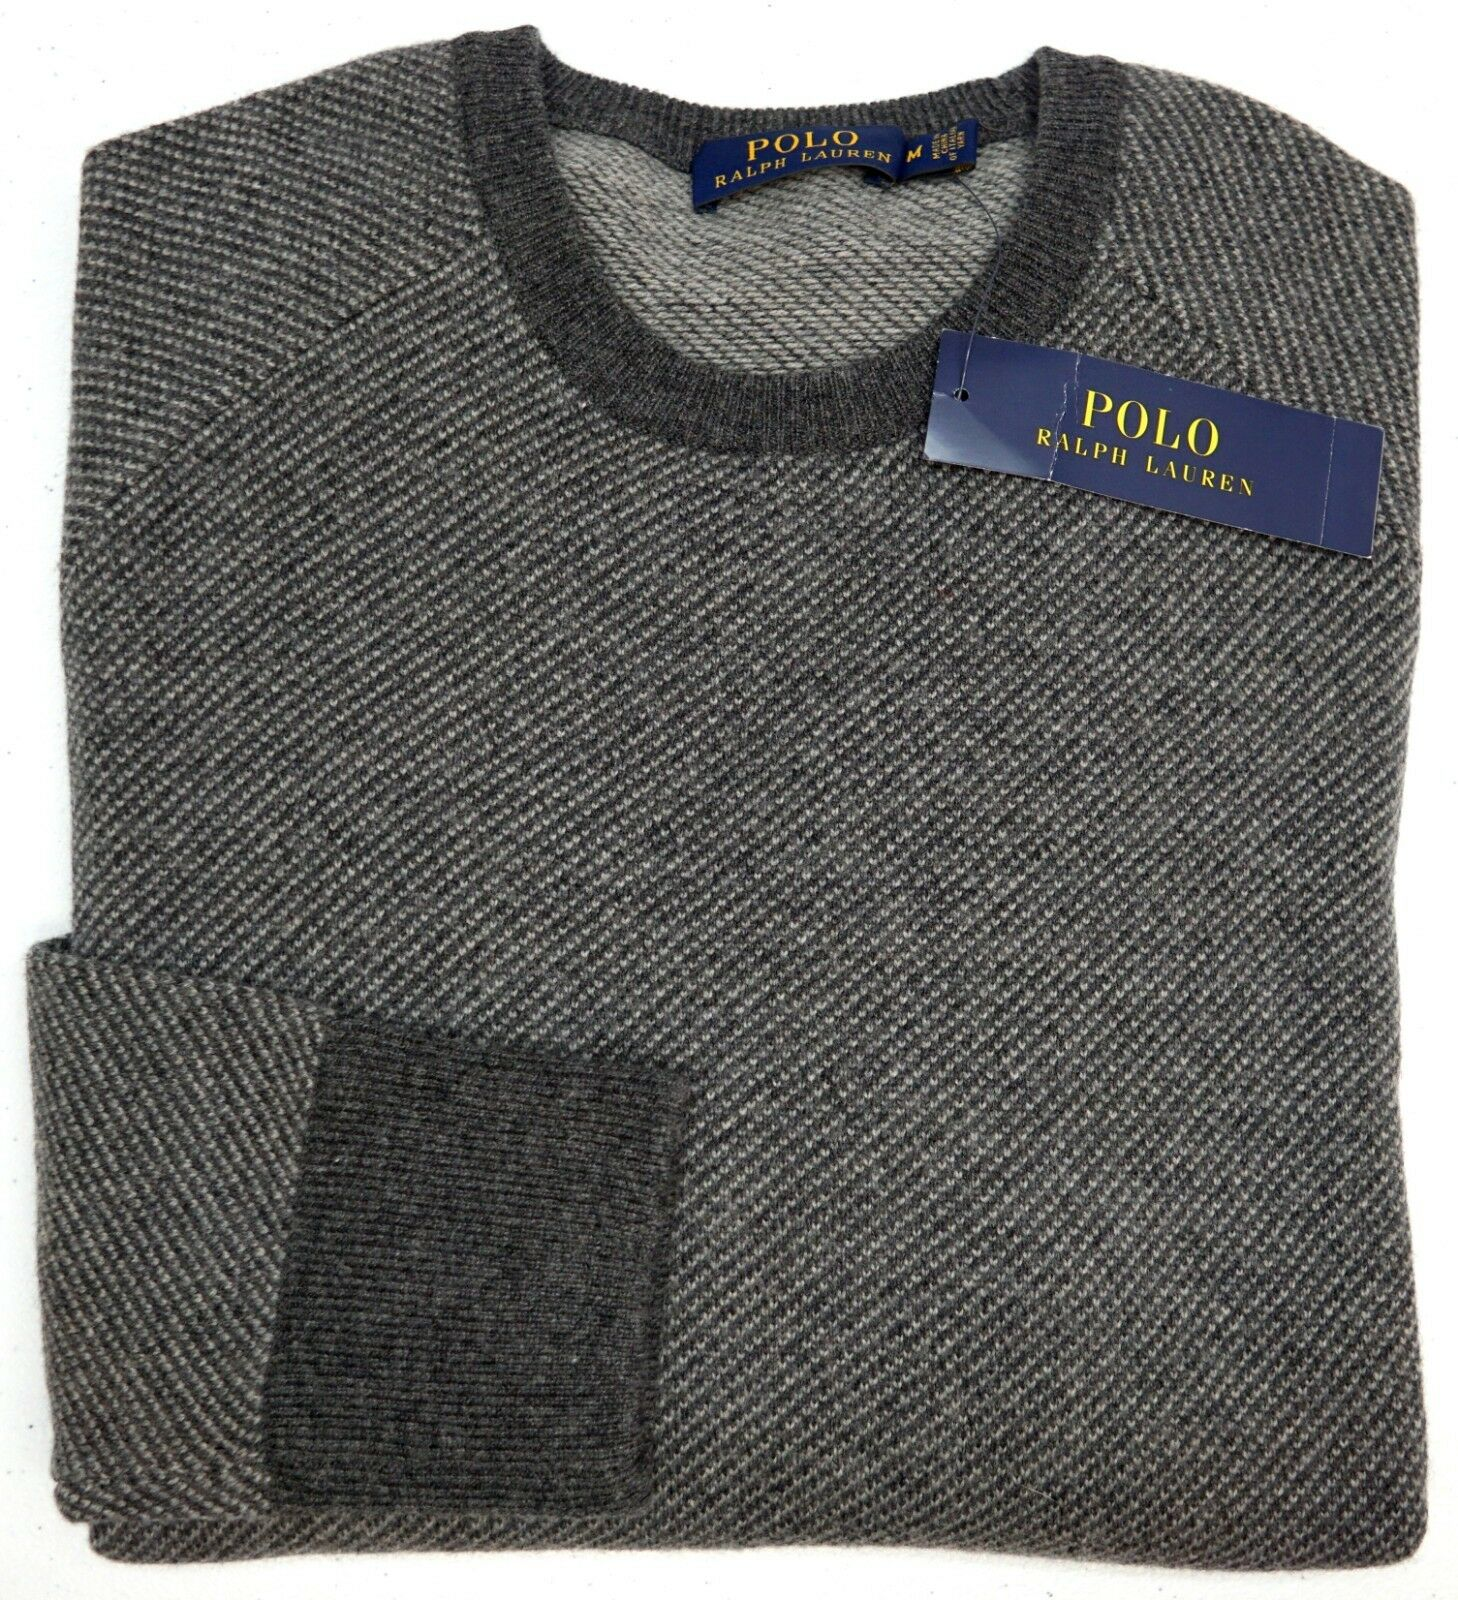 NWT 225 Polo Ralph Lauren LS Merino Wool TextuROT grau Sweater Men M L NEW Grau